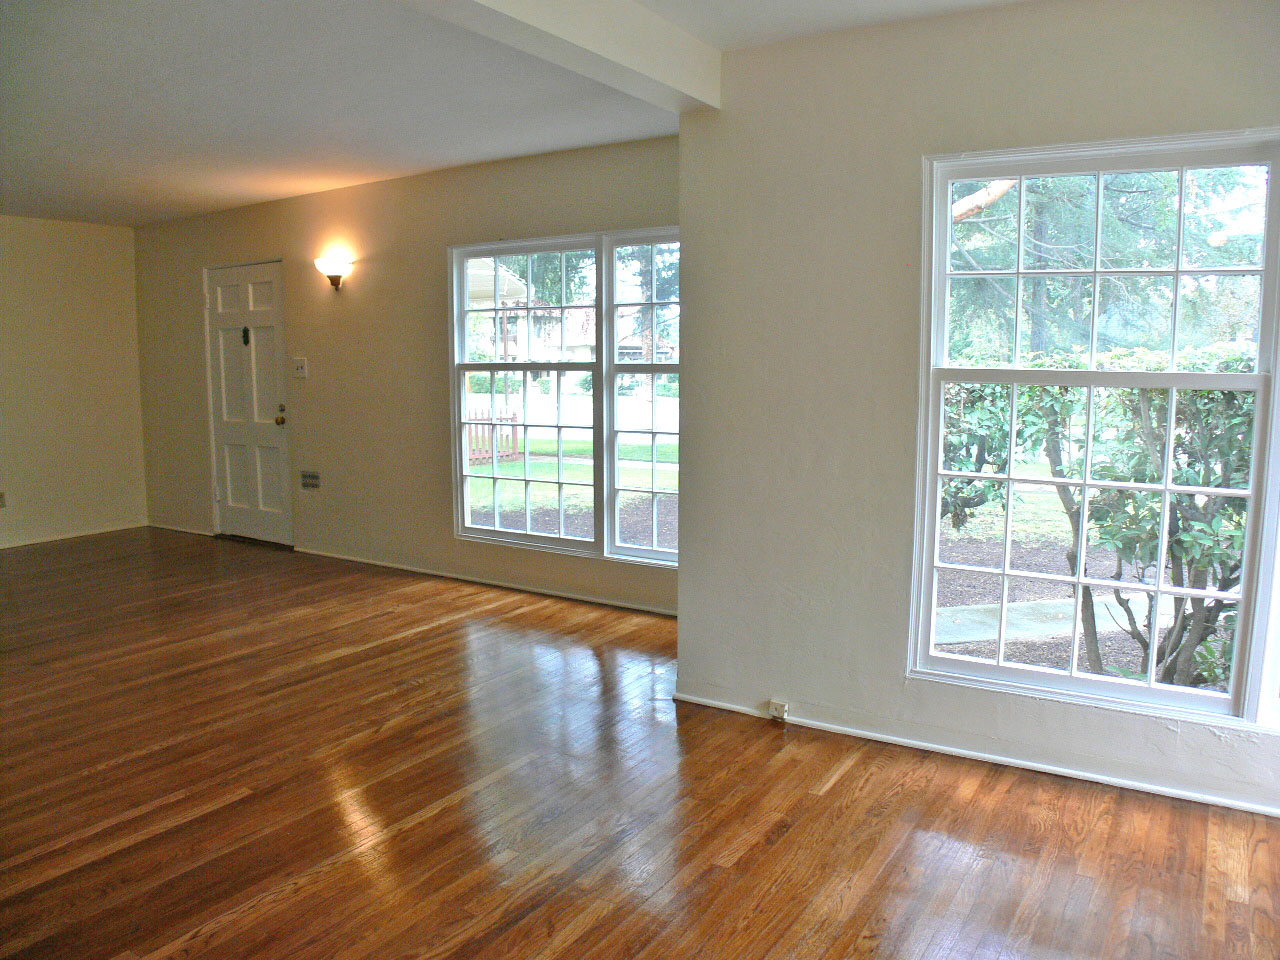 Alternate View Of Living Room And Dining Room. Large Windows Let In Loads  Of Natural